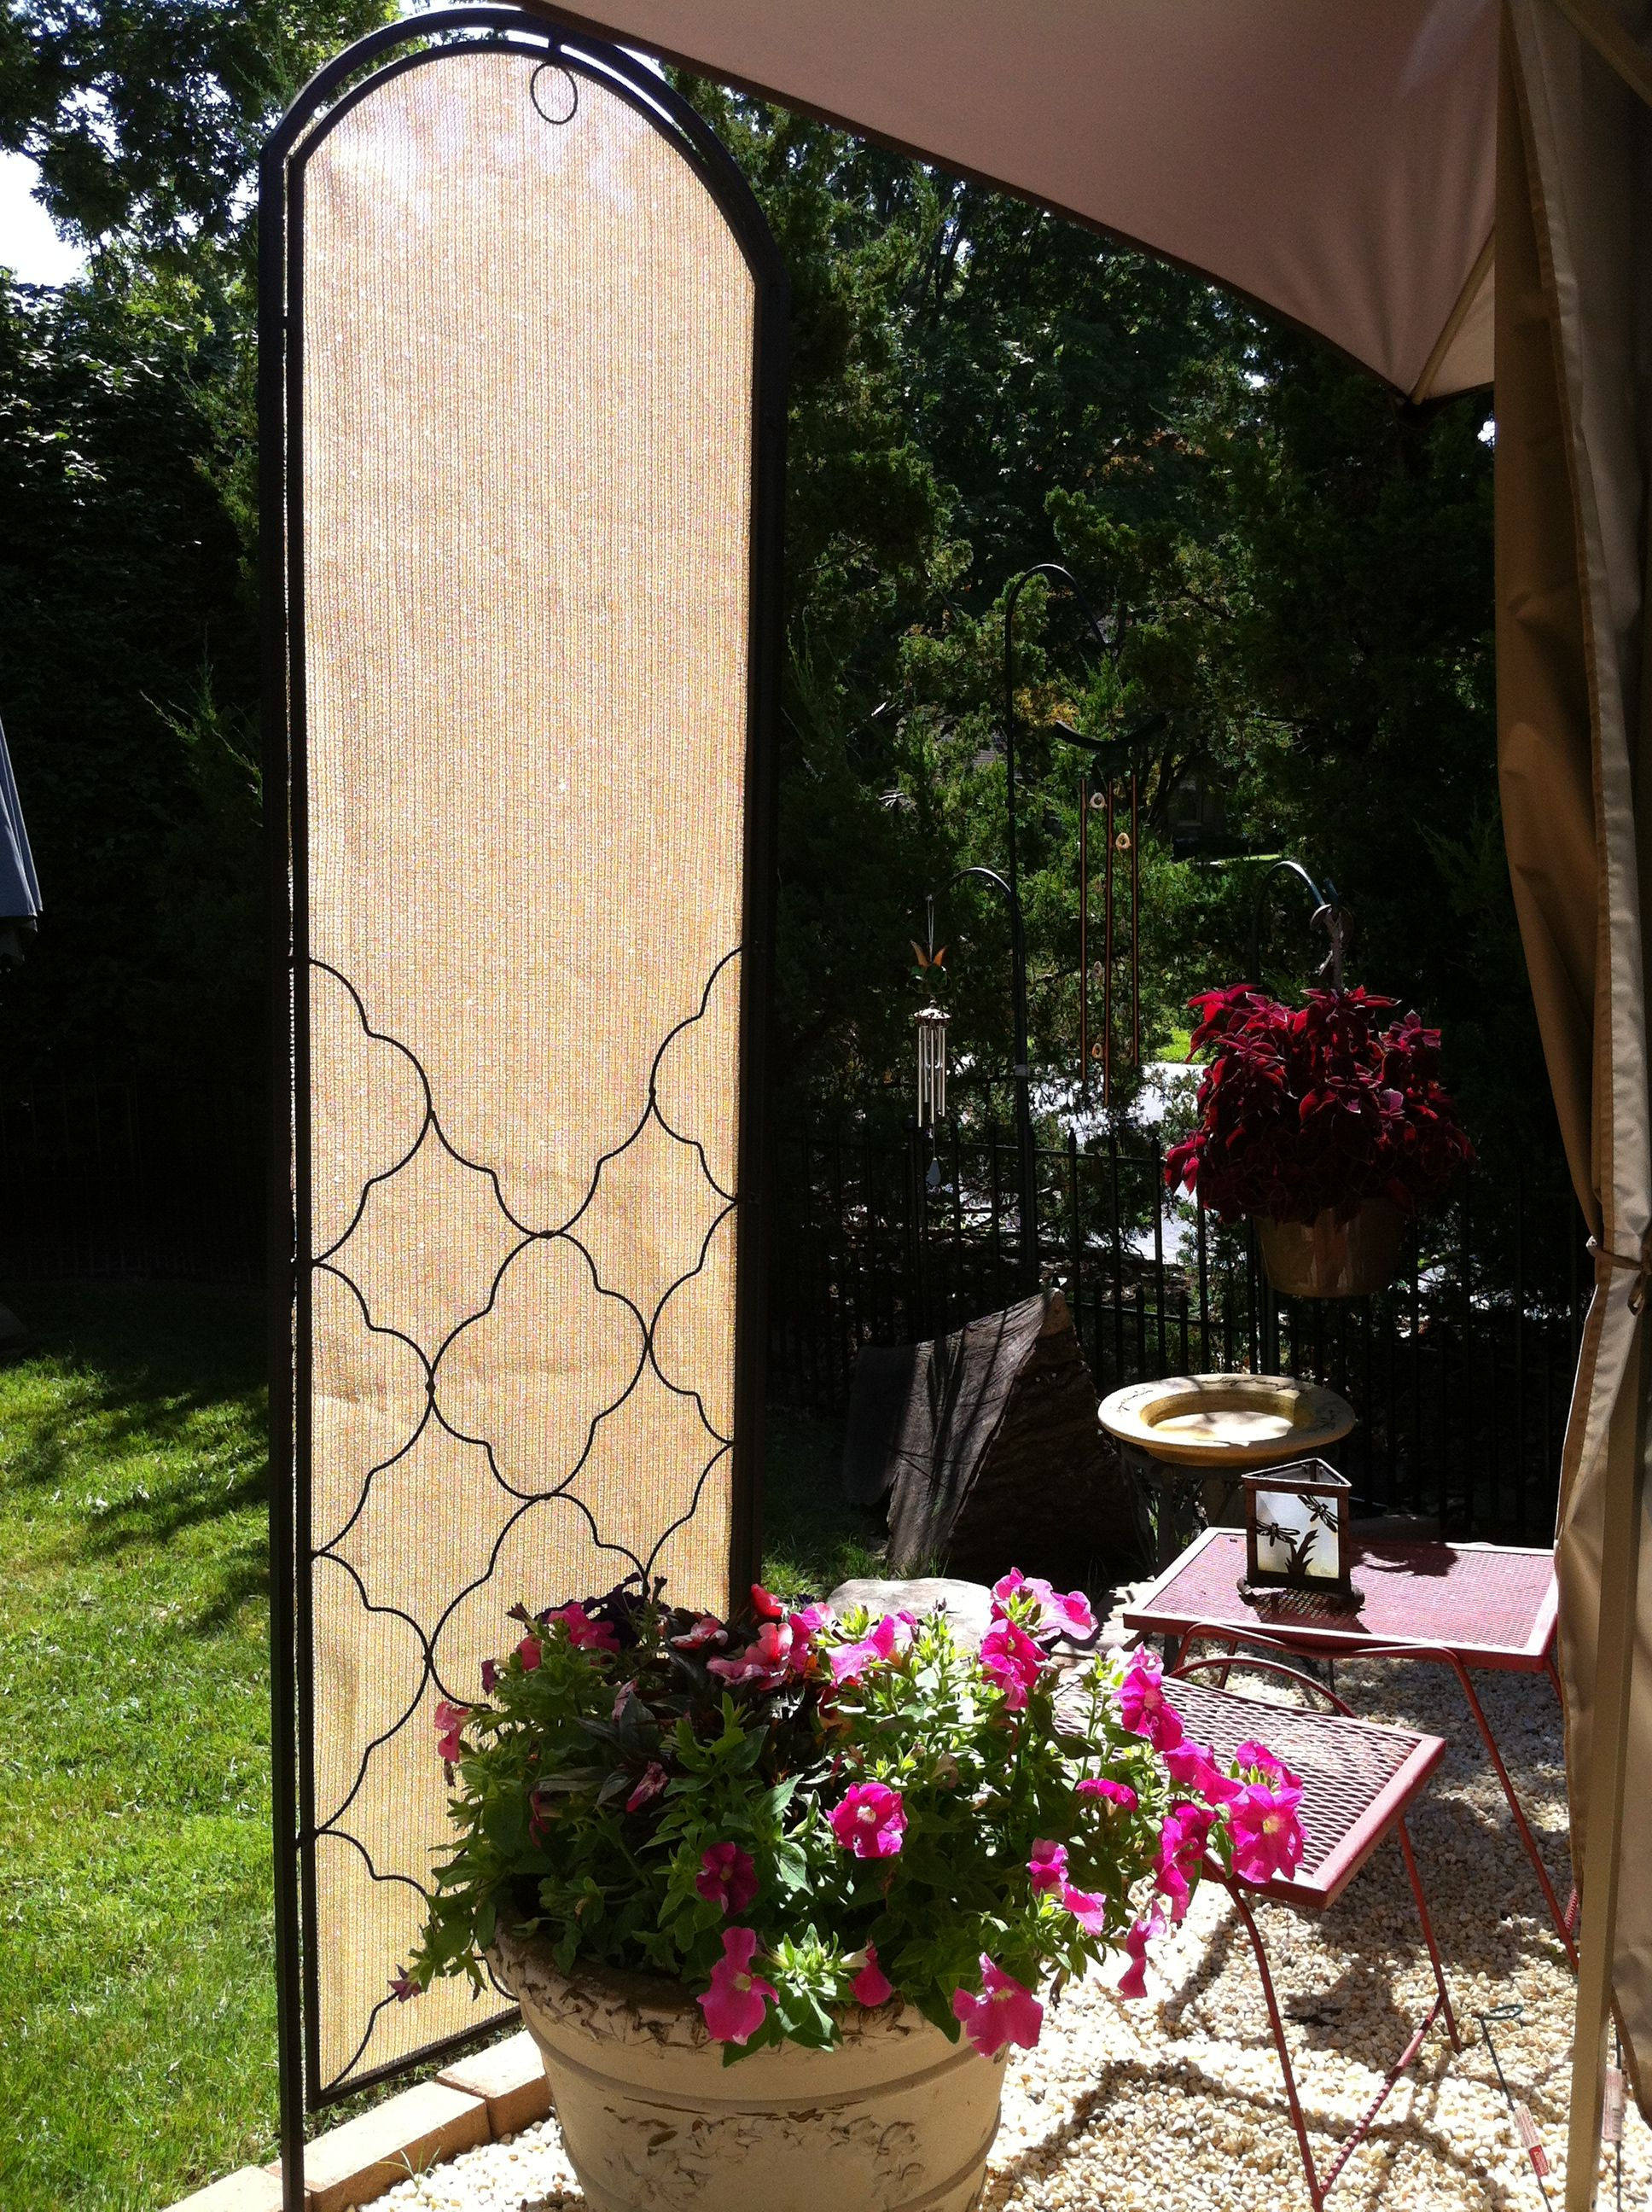 Diy Patio Privacy Screen Ideas: Voila! DIY Portable Patio Shade Screen! Works For Privacy